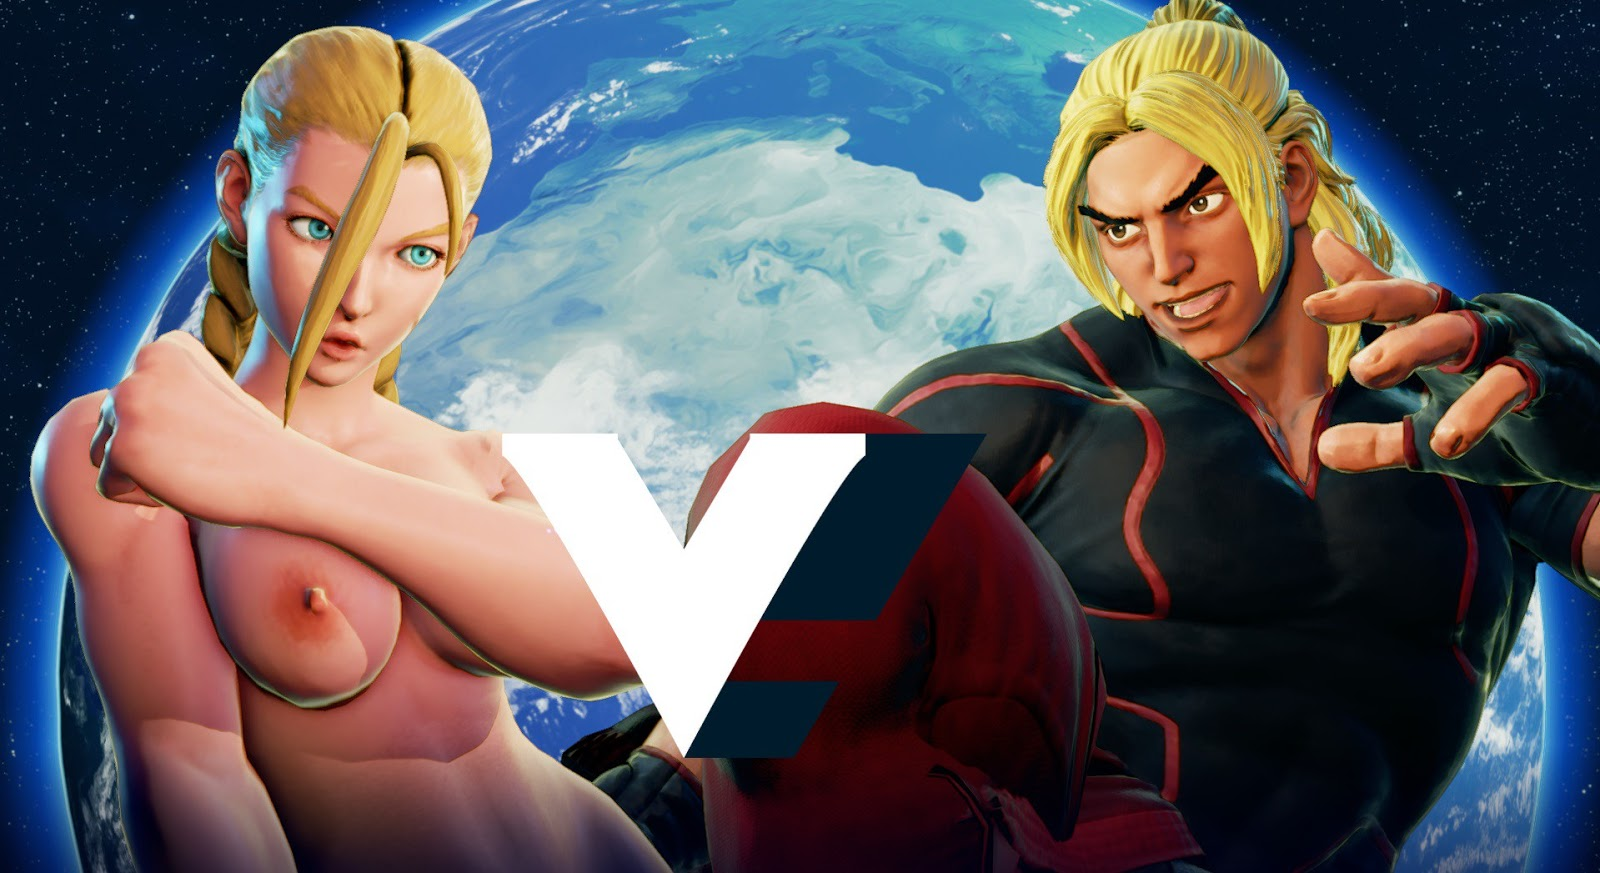 street fighter characters nude